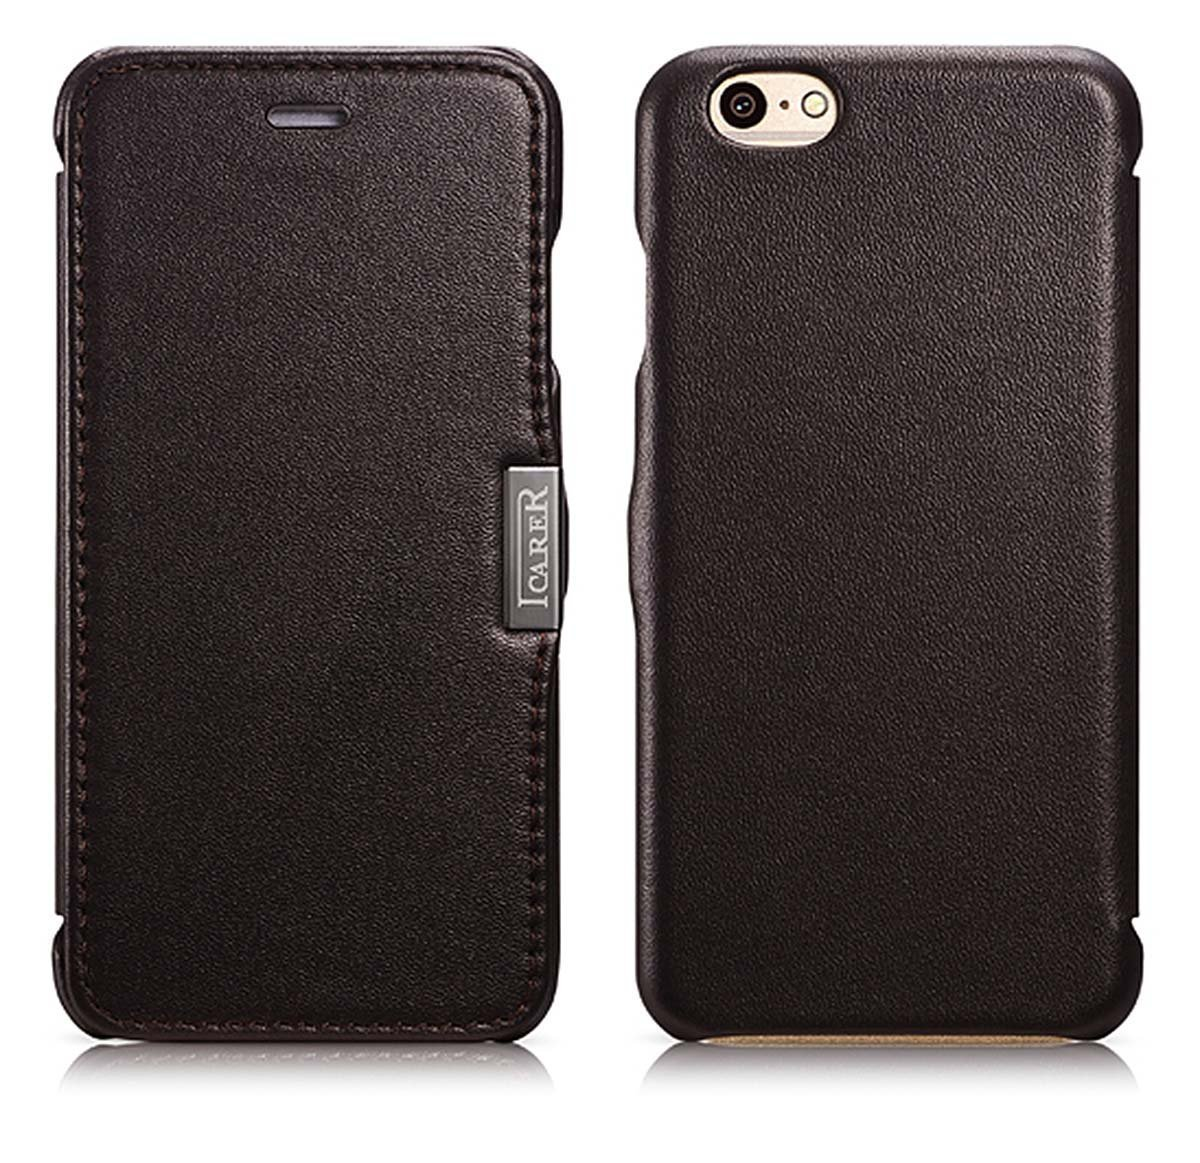 MH Designs iPhone 6 Italian Leather Smartphone Case (buffed dark brown)Customer reviews and more information